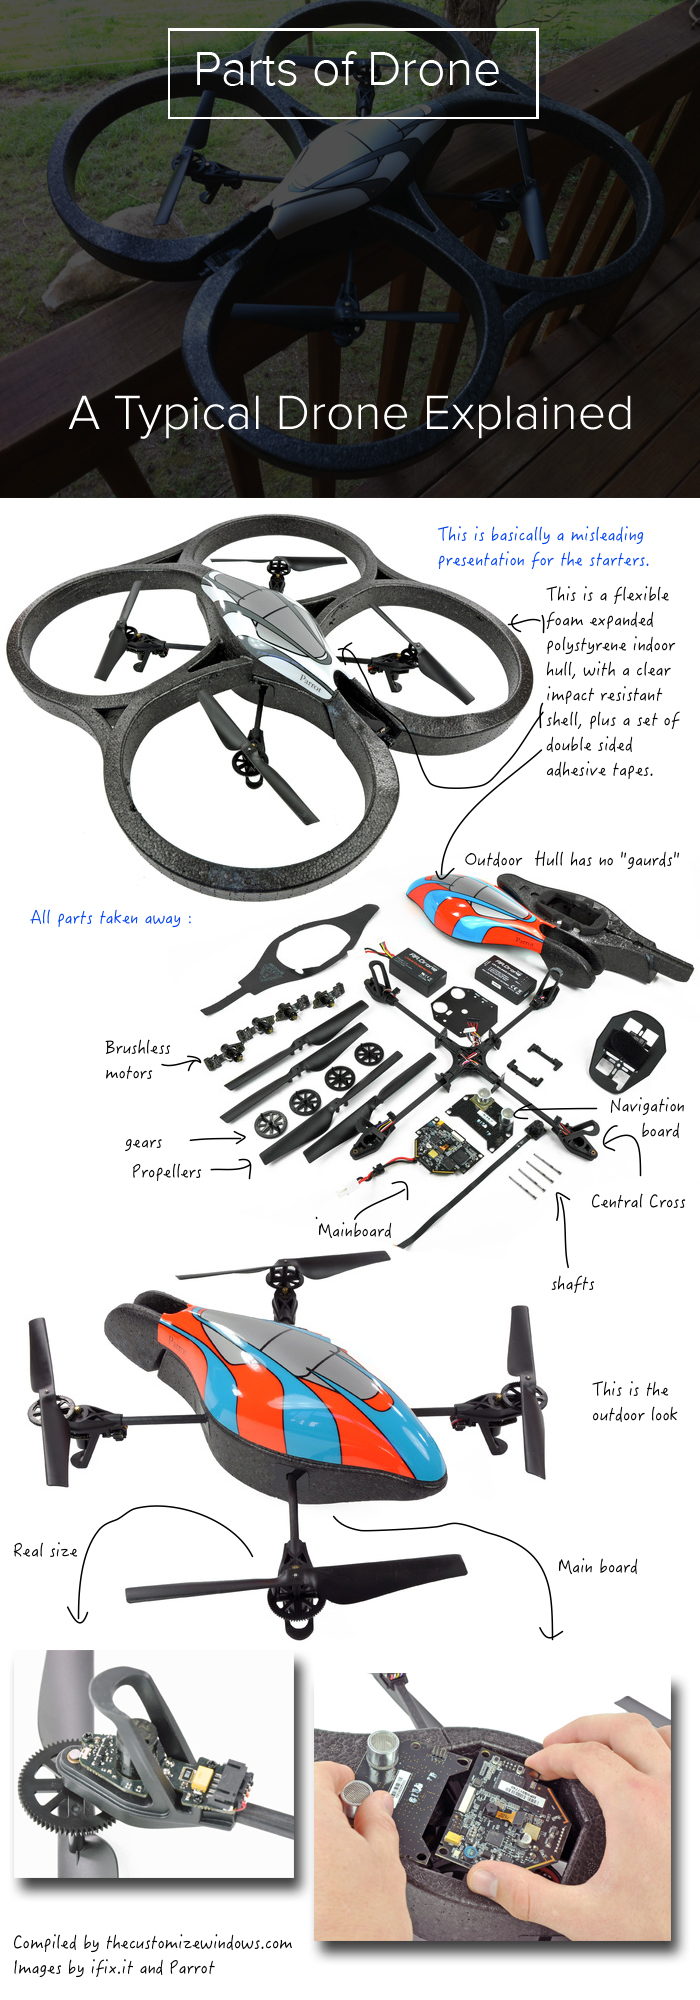 What-is-Drone-Parts-of-Drone